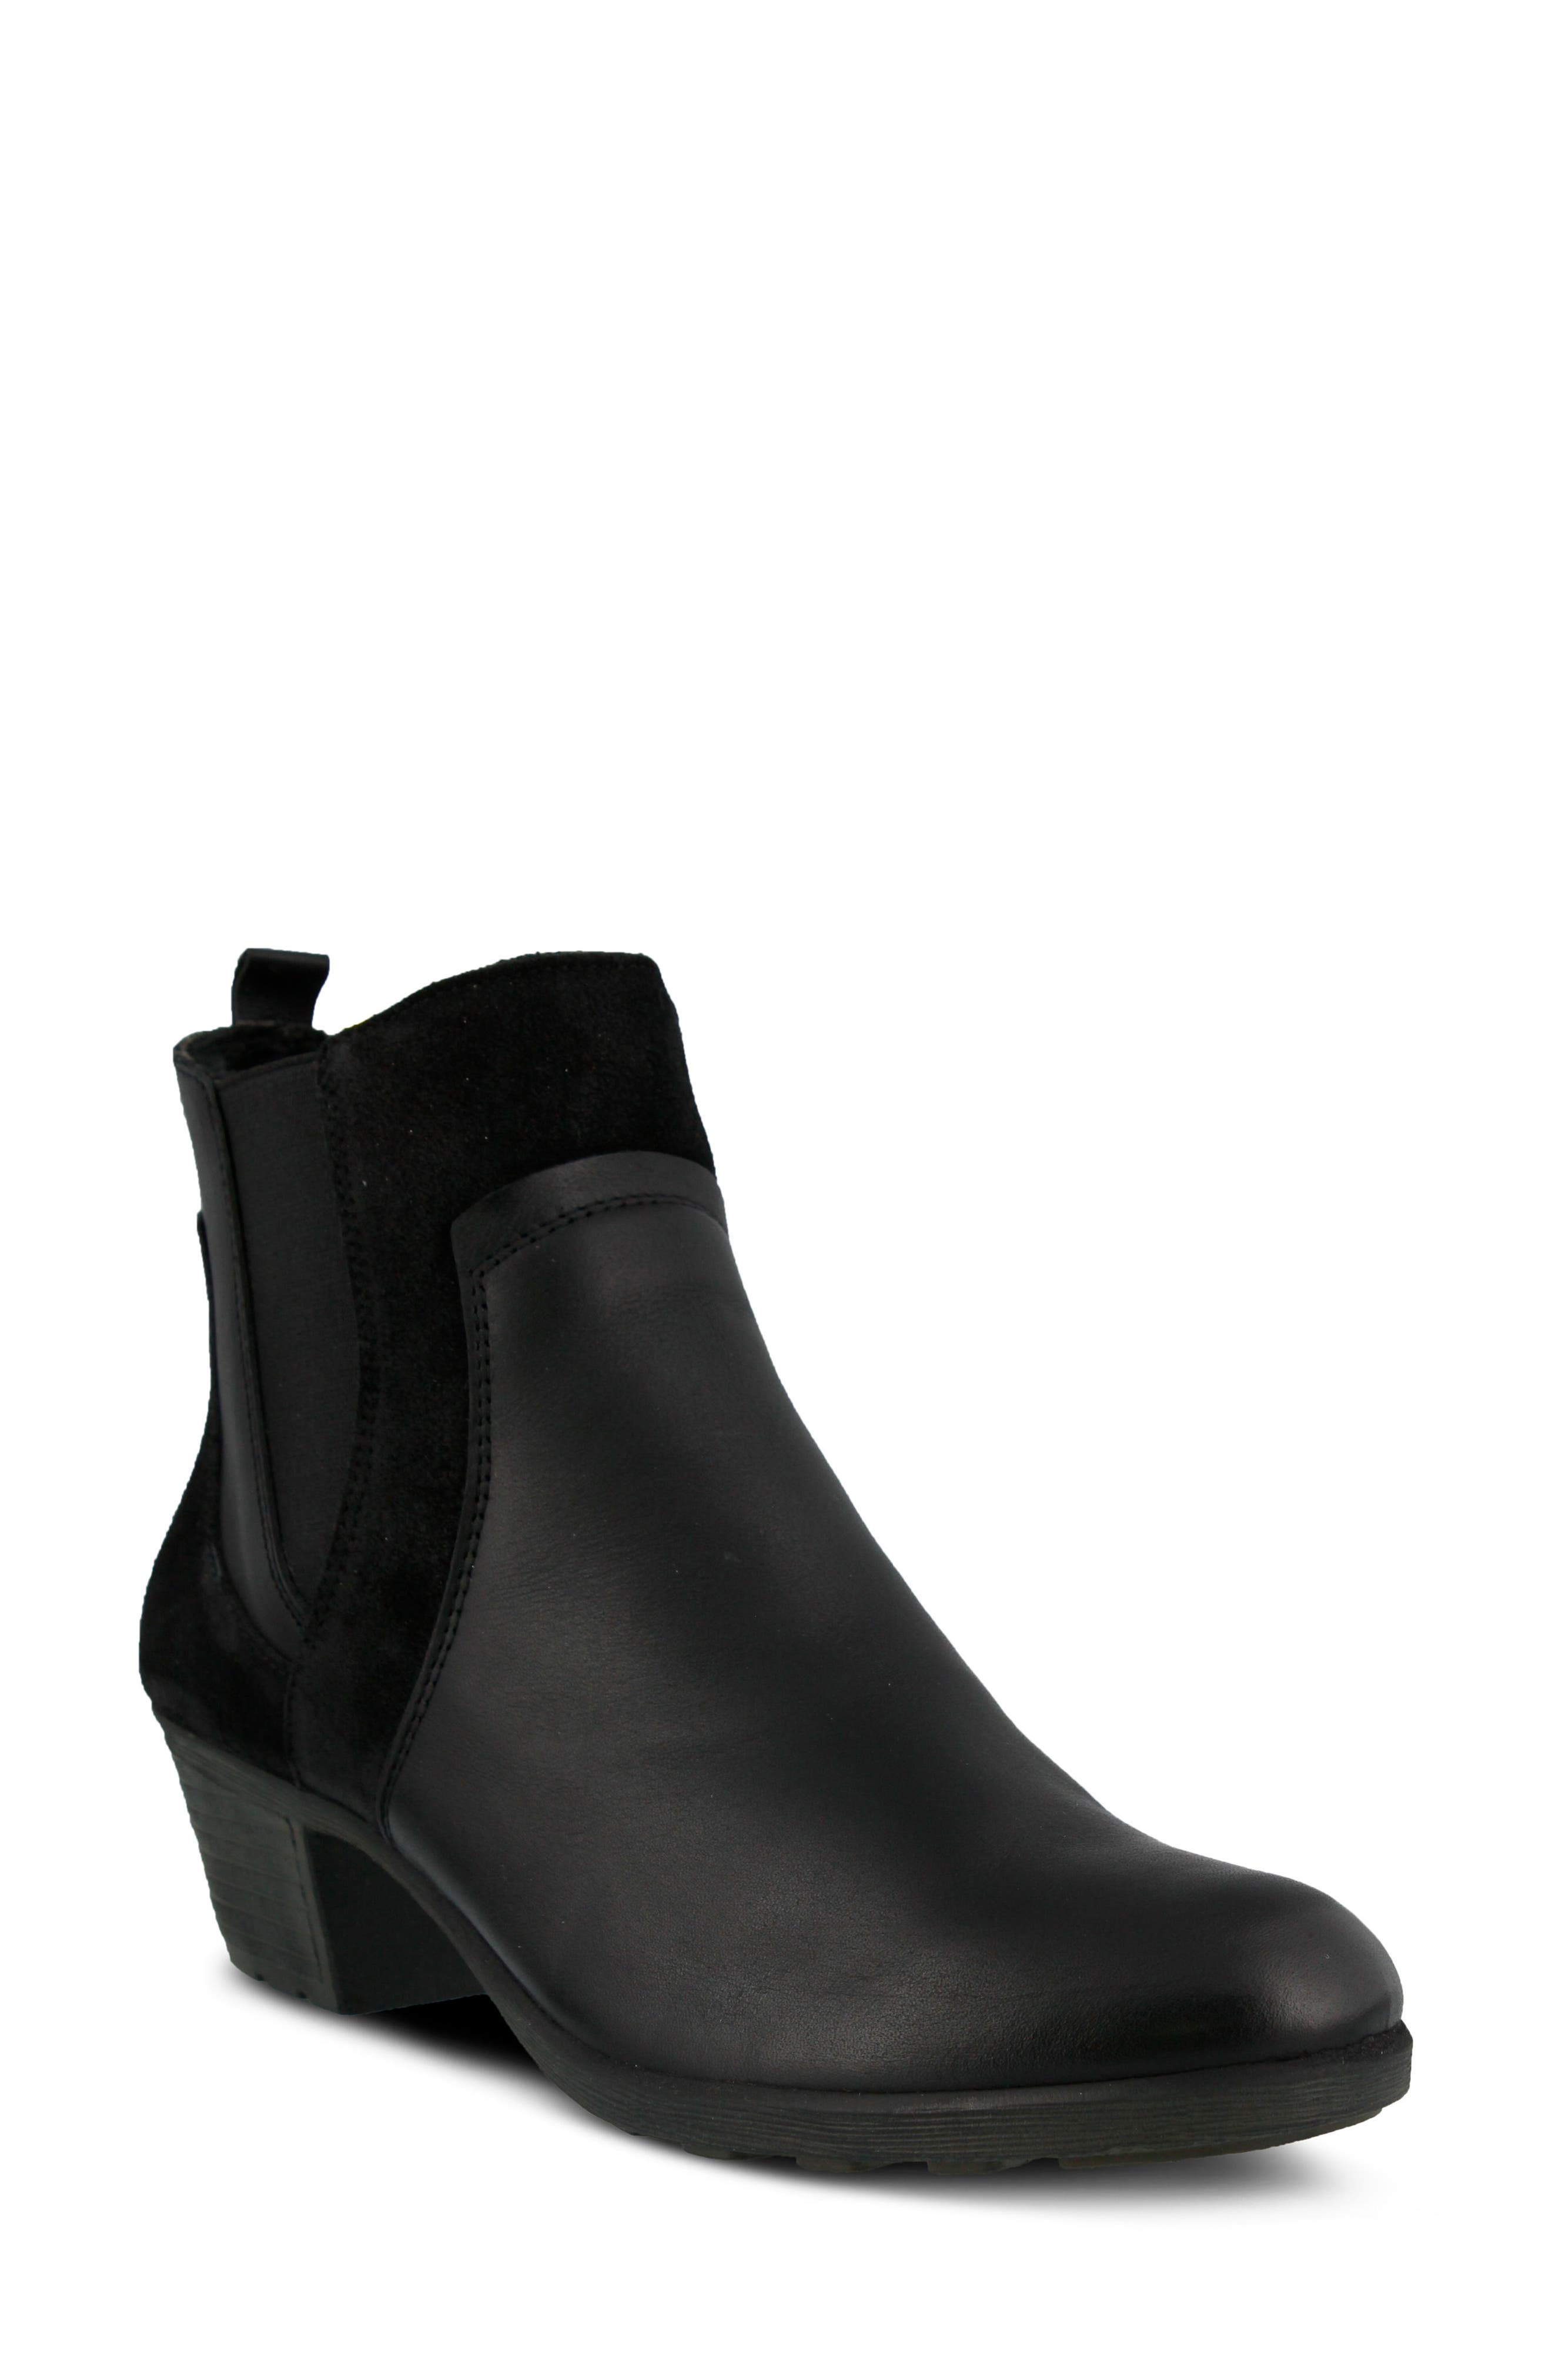 Pousada Bootie,                         Main,                         color, Black Leather